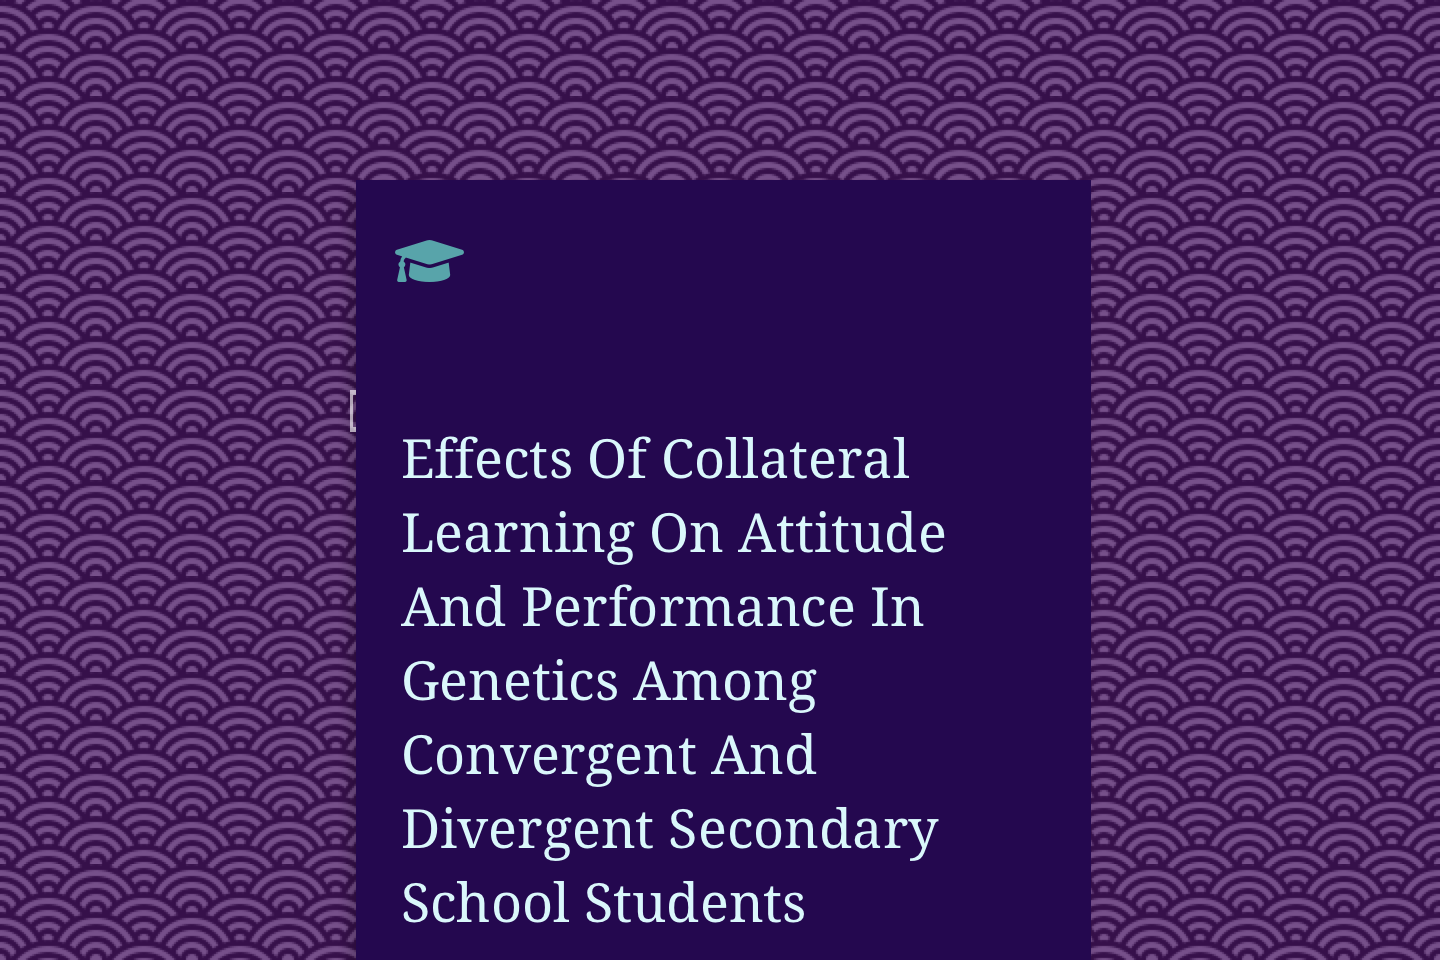 Effects Of Collateral Learning On Attitude And Performance In Genetics Among Convergent And Divergent Secondary School Students Of Suleja Educational Zone, Nigeria